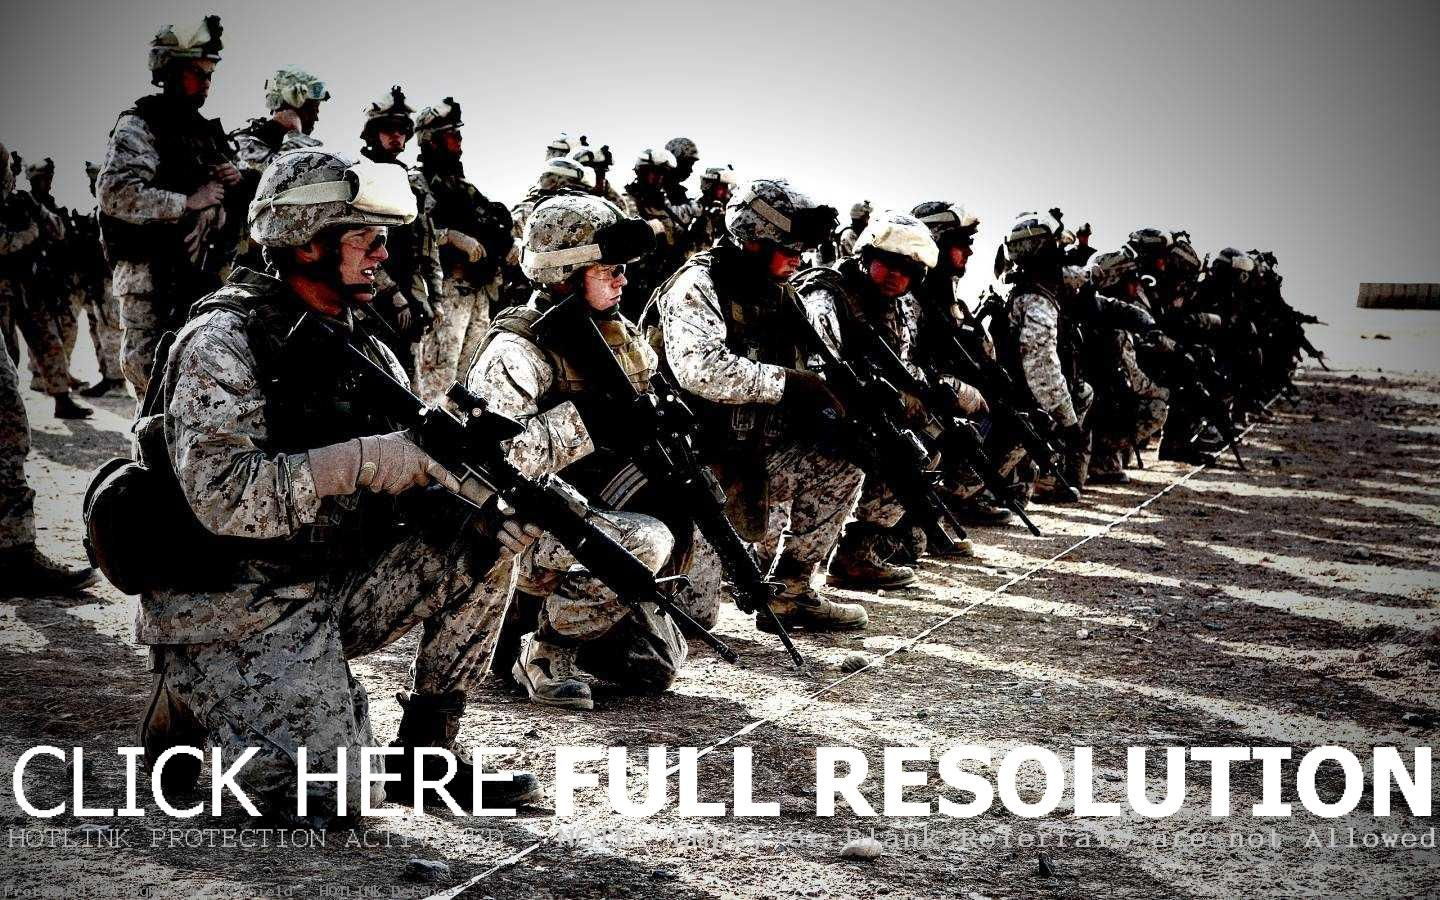 Cool Army Wallpapers In Hd For Free Download 1440 900 Army Wallpapers Hd 47 Wallpapers Adorable Wallpap Military Wallpaper Army Wallpaper American Soldiers